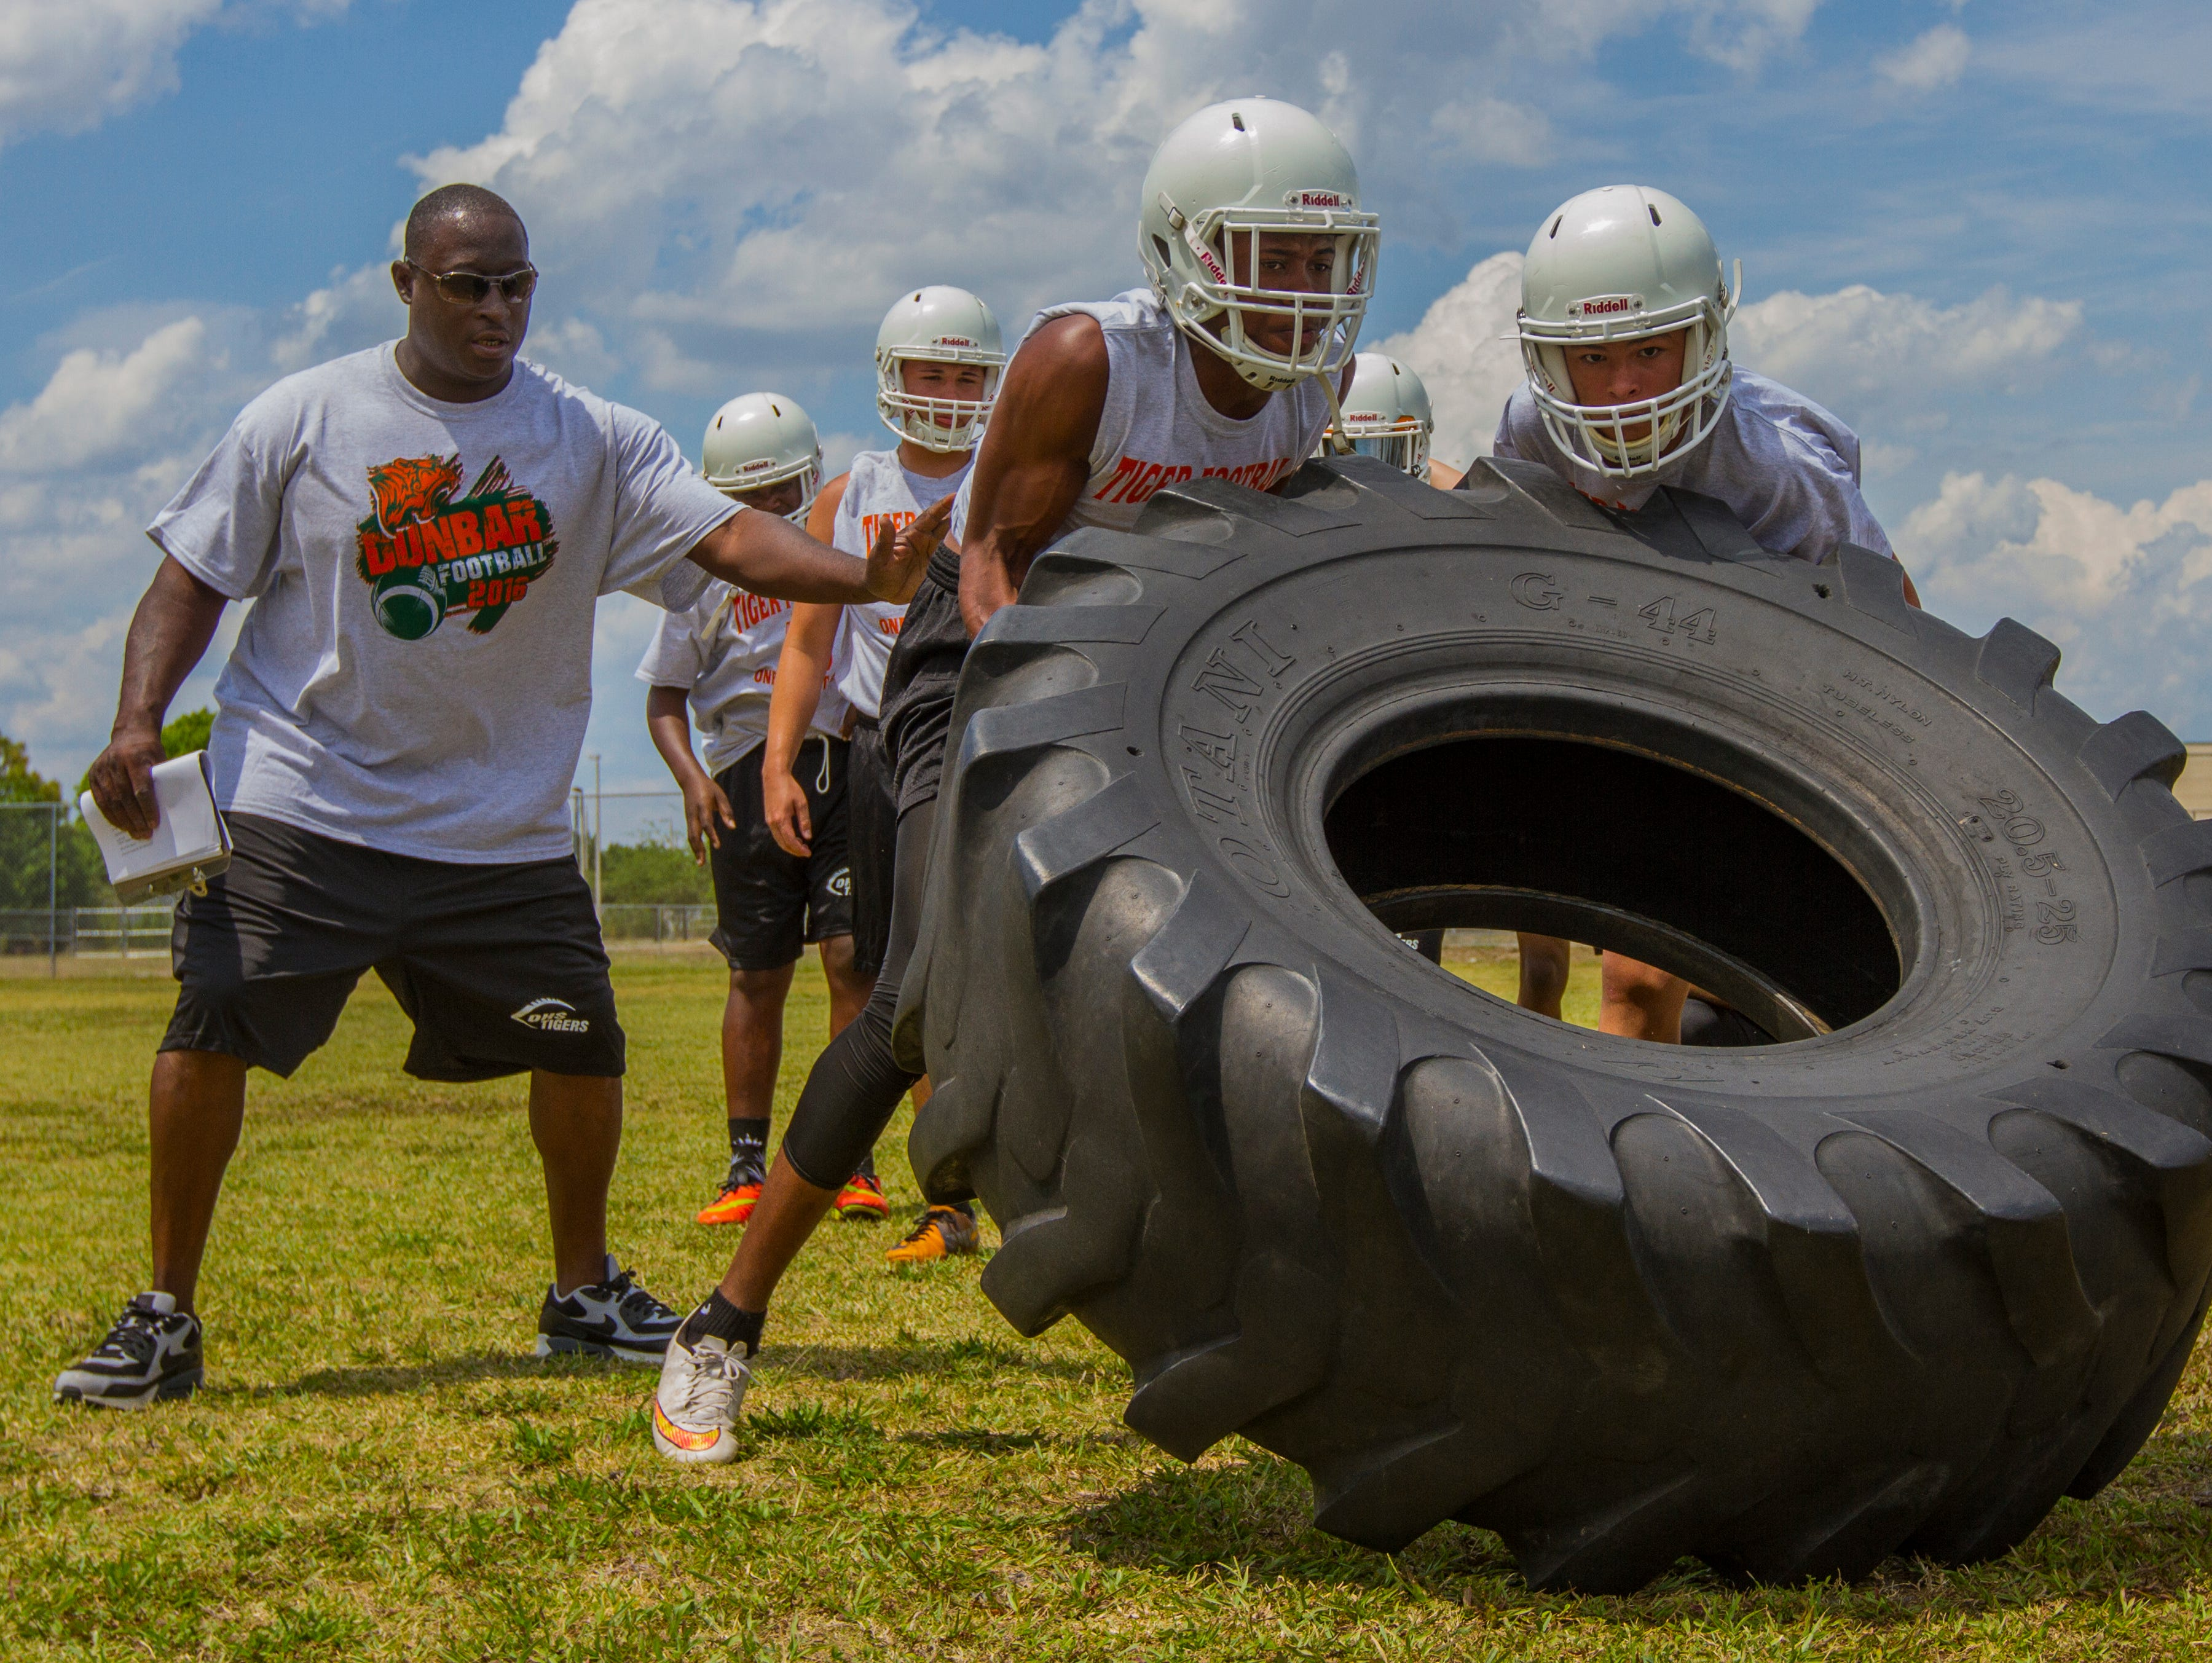 Dunbar High School's interim football coach Sammy Brown works on strength and conditioning drills with his players during an after school practice Monday (4/25/16) in Fort Myers.